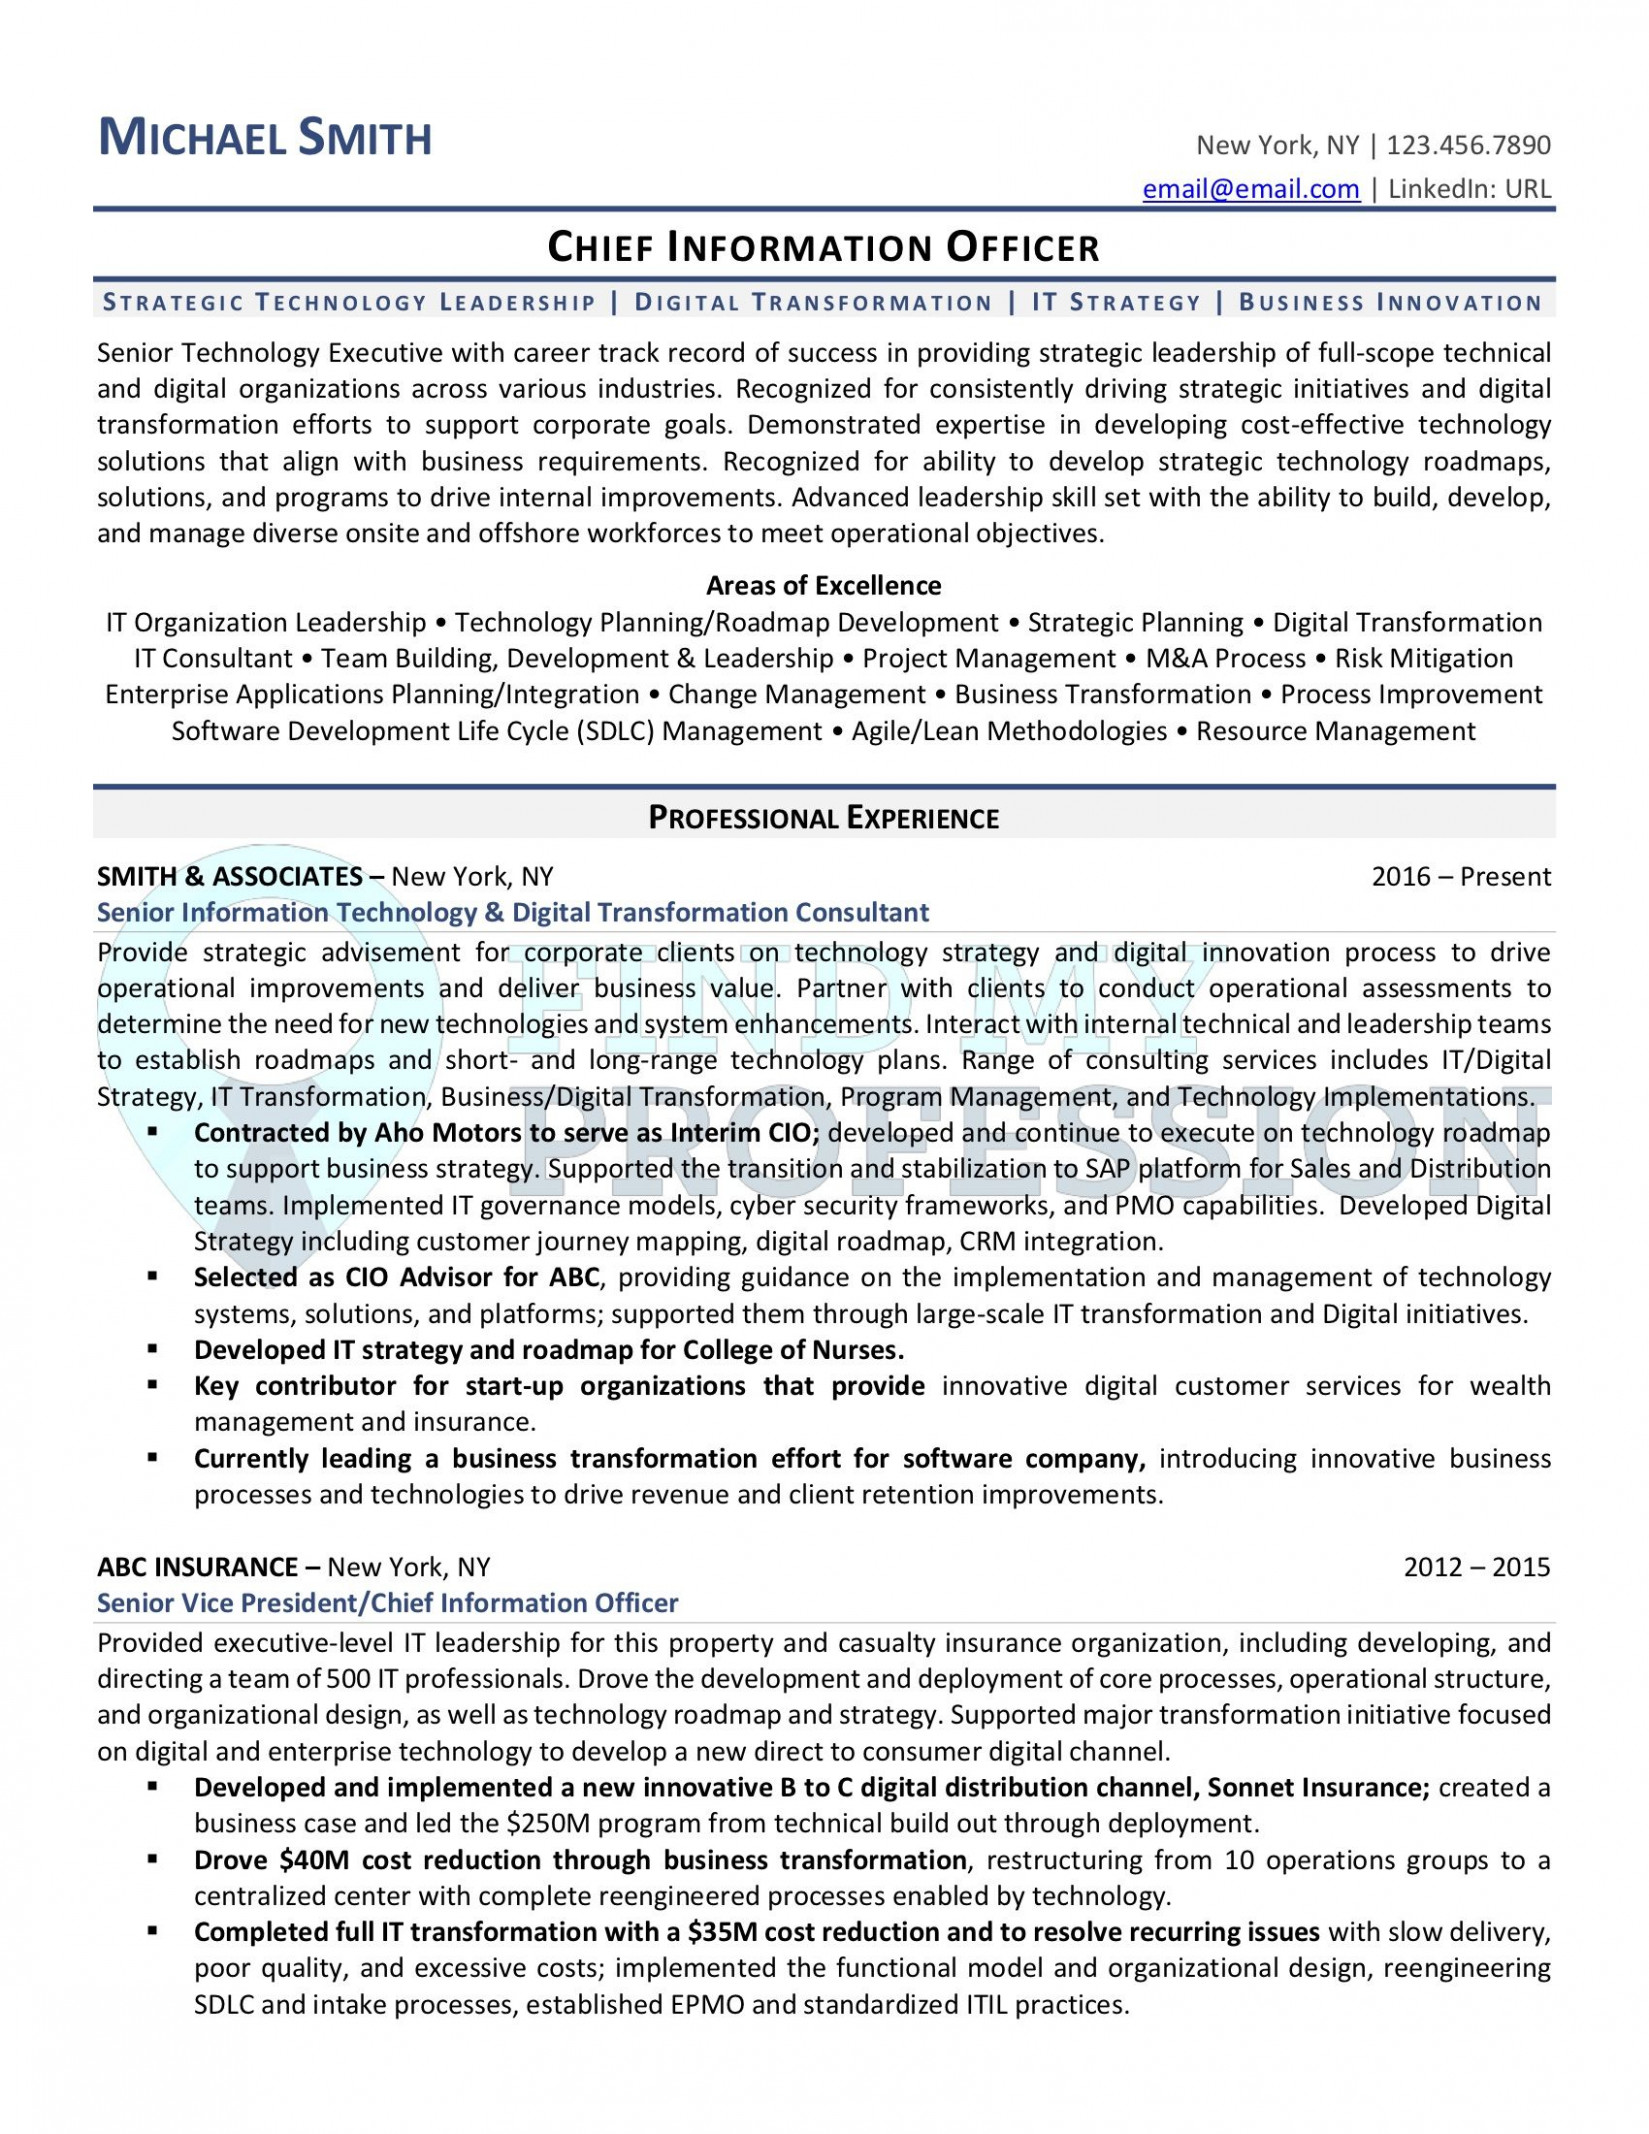 best professional resume writing services vancouver information technology skills for Resume Professional Resume Services Vancouver